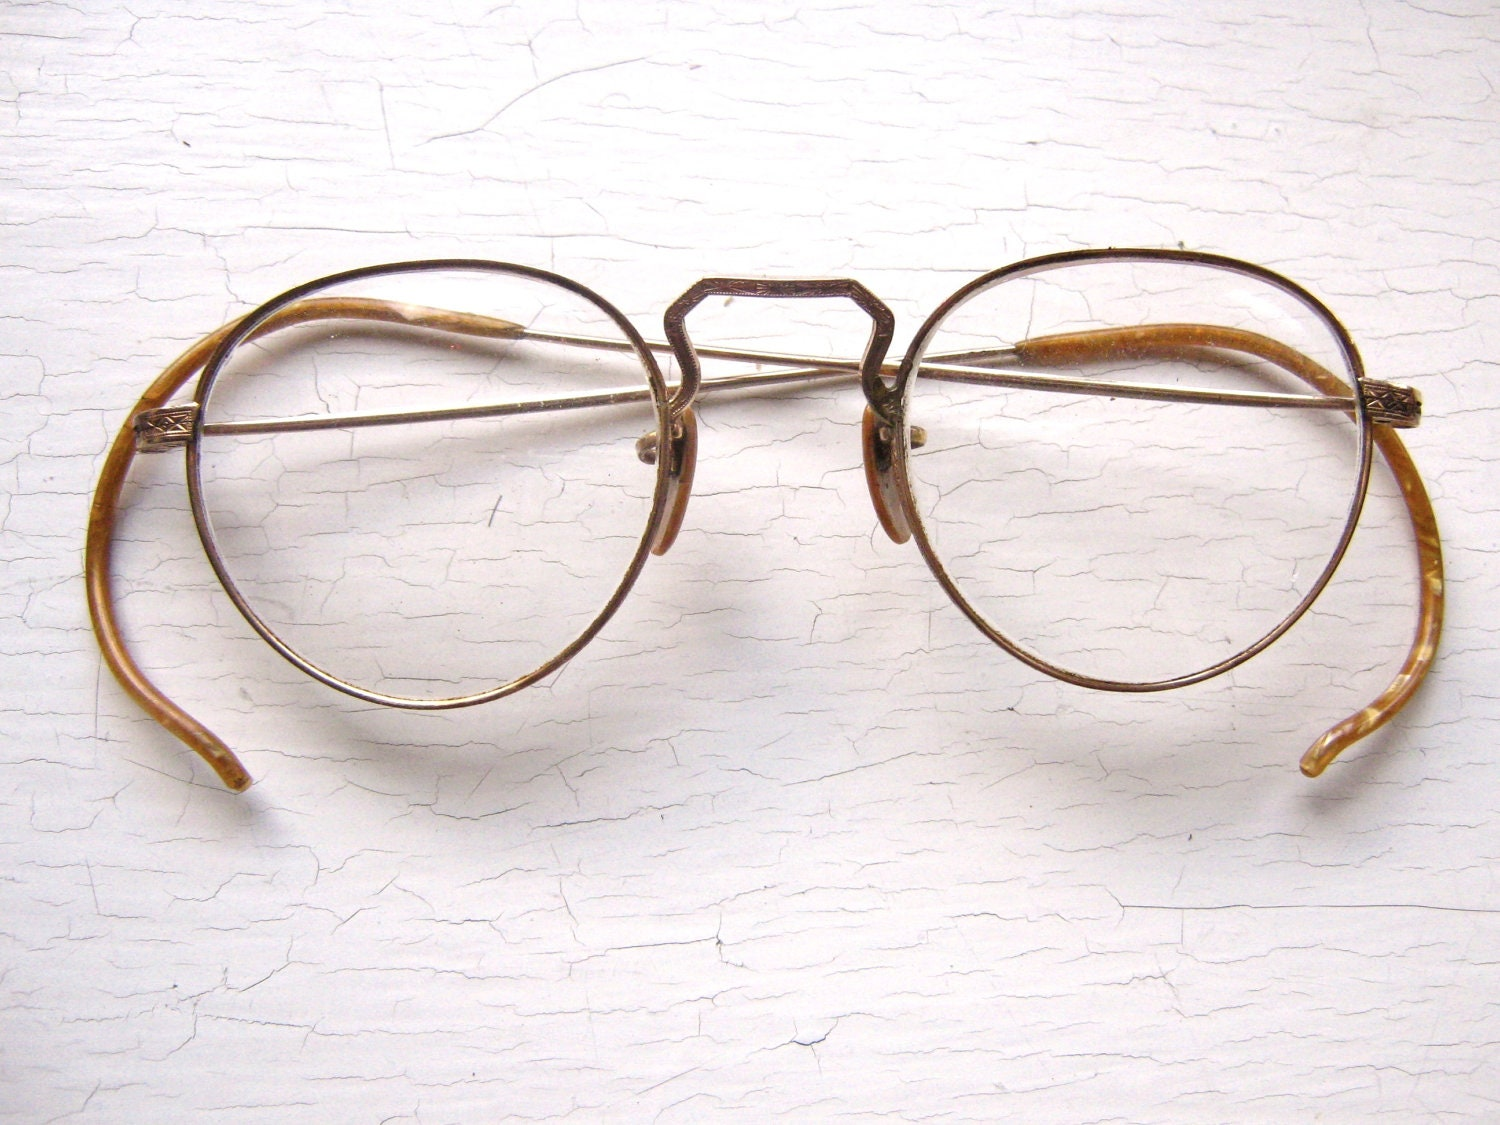 Glasses Frames Creaking : Pre WWII 1920s-30s Gold Filled Chased Metal Round